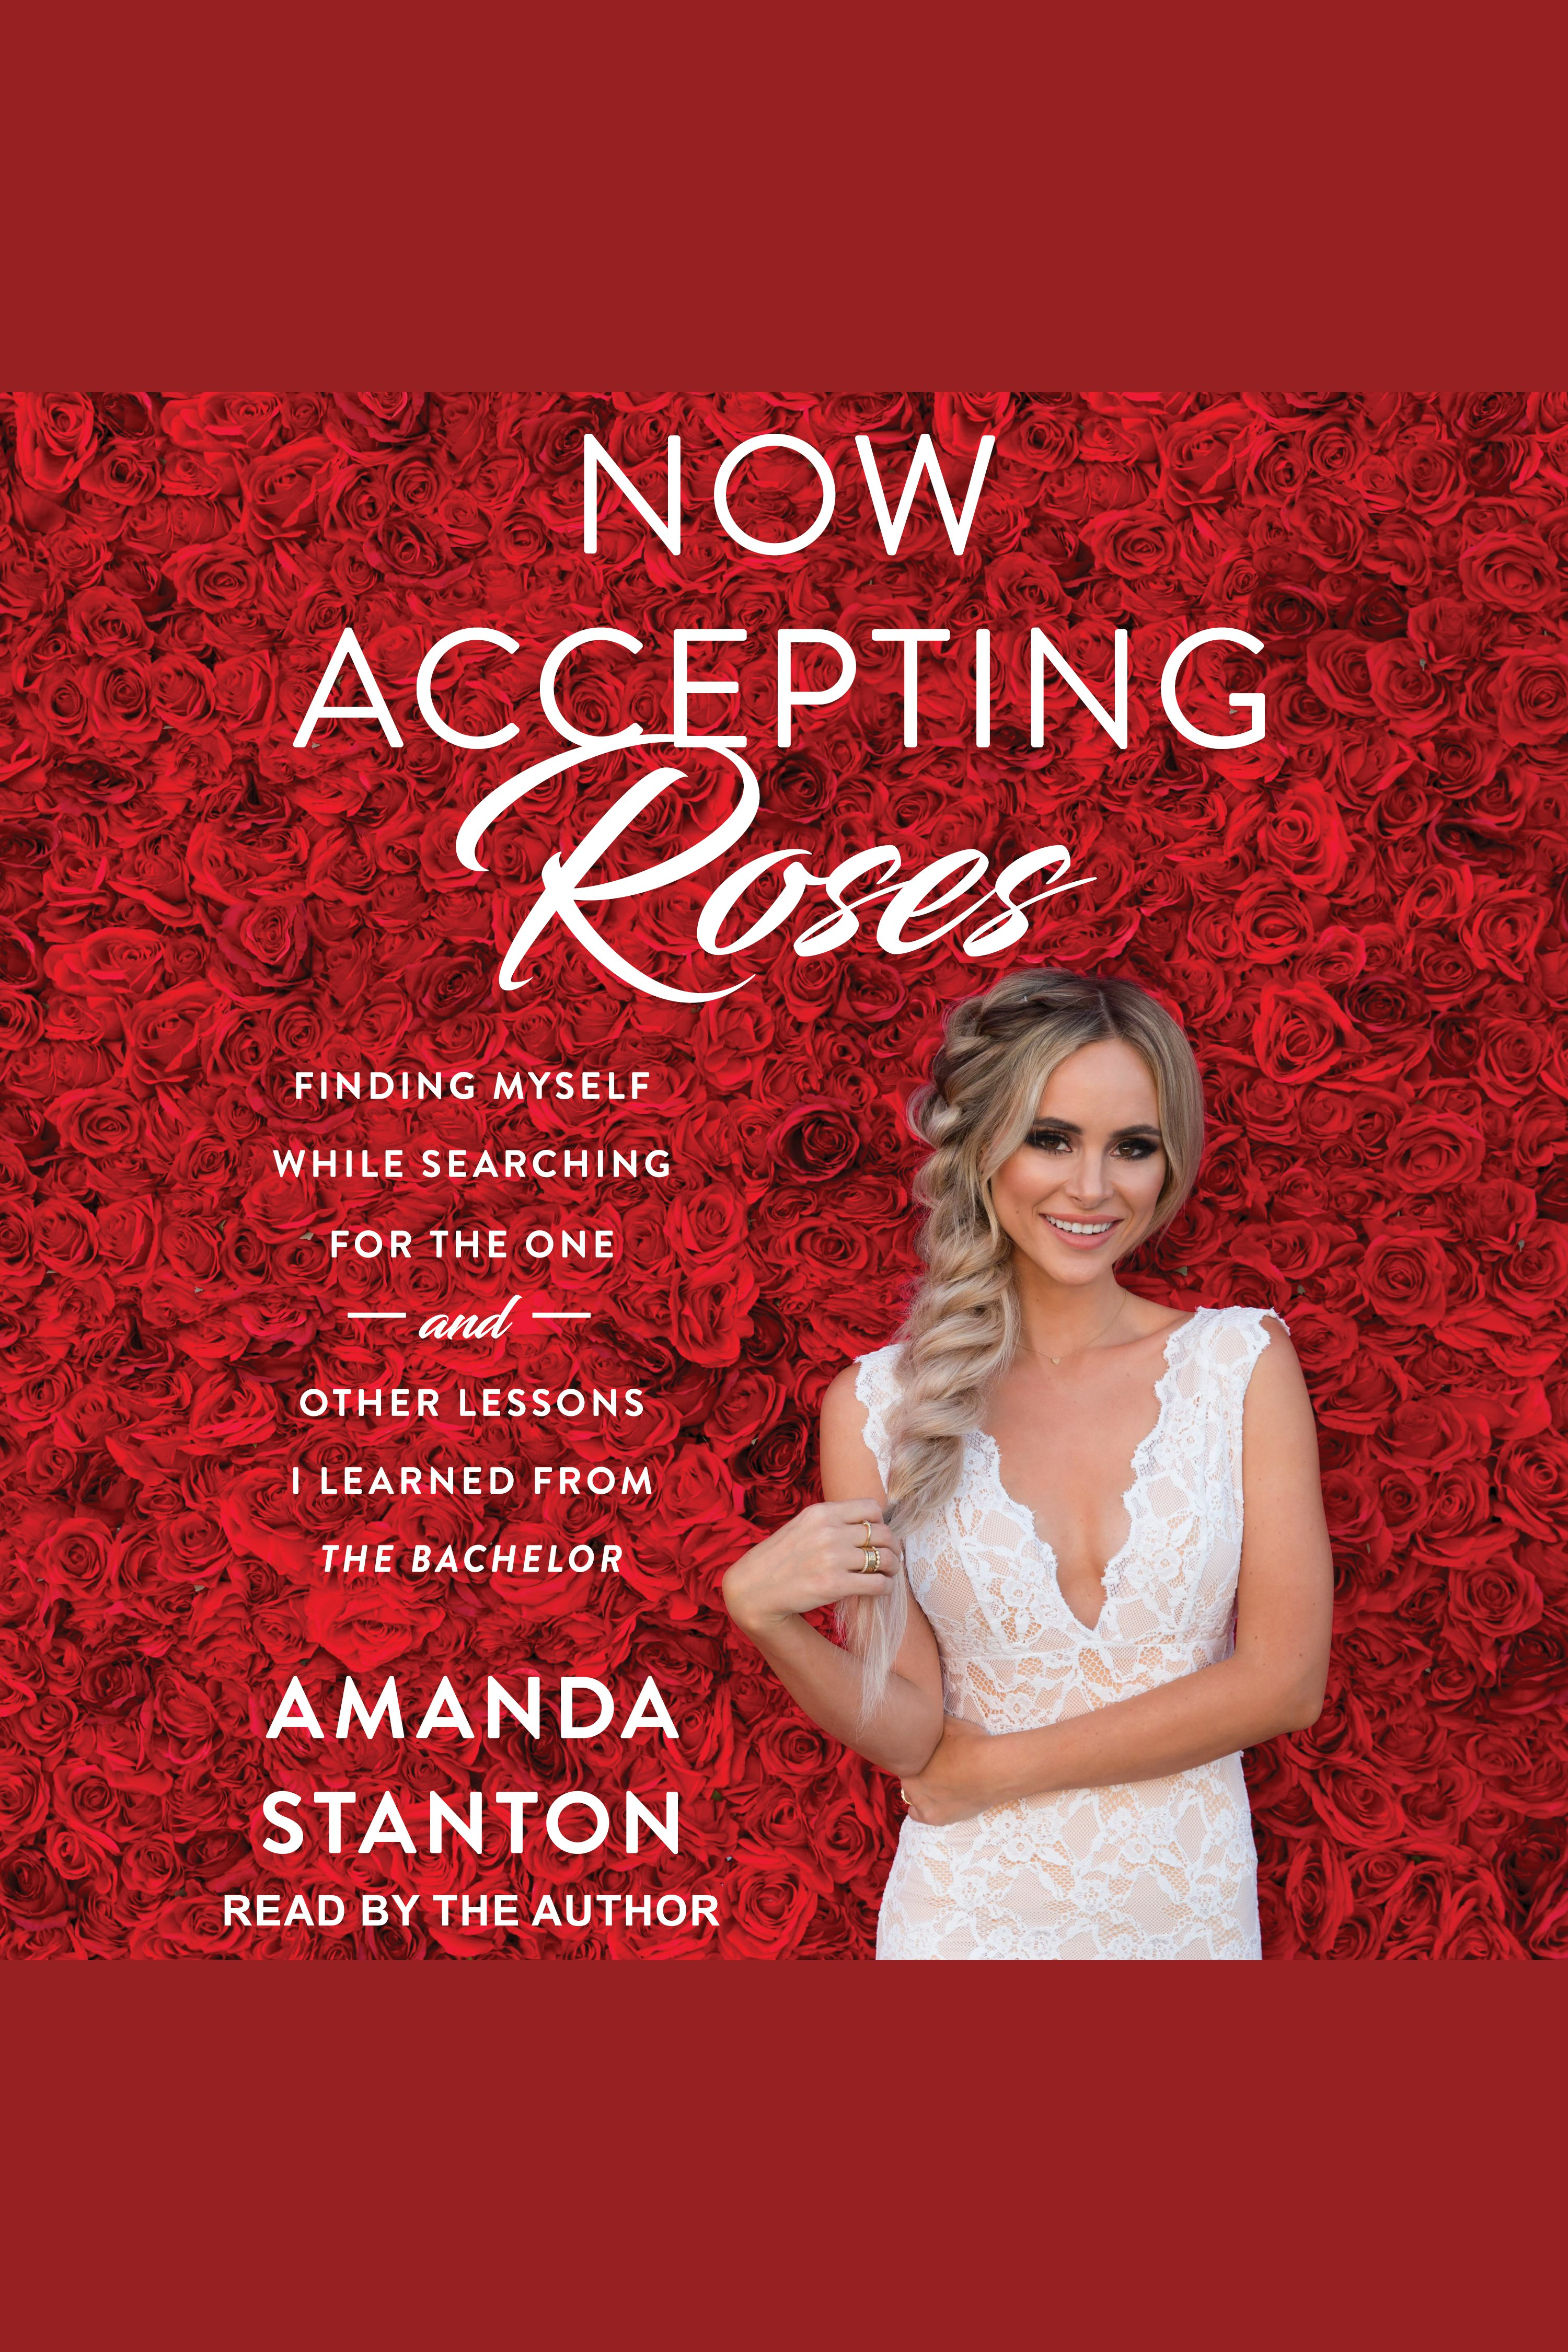 Now accepting roses finding myself while searching for the one... and other lessons I learned from the Bachelor cover image